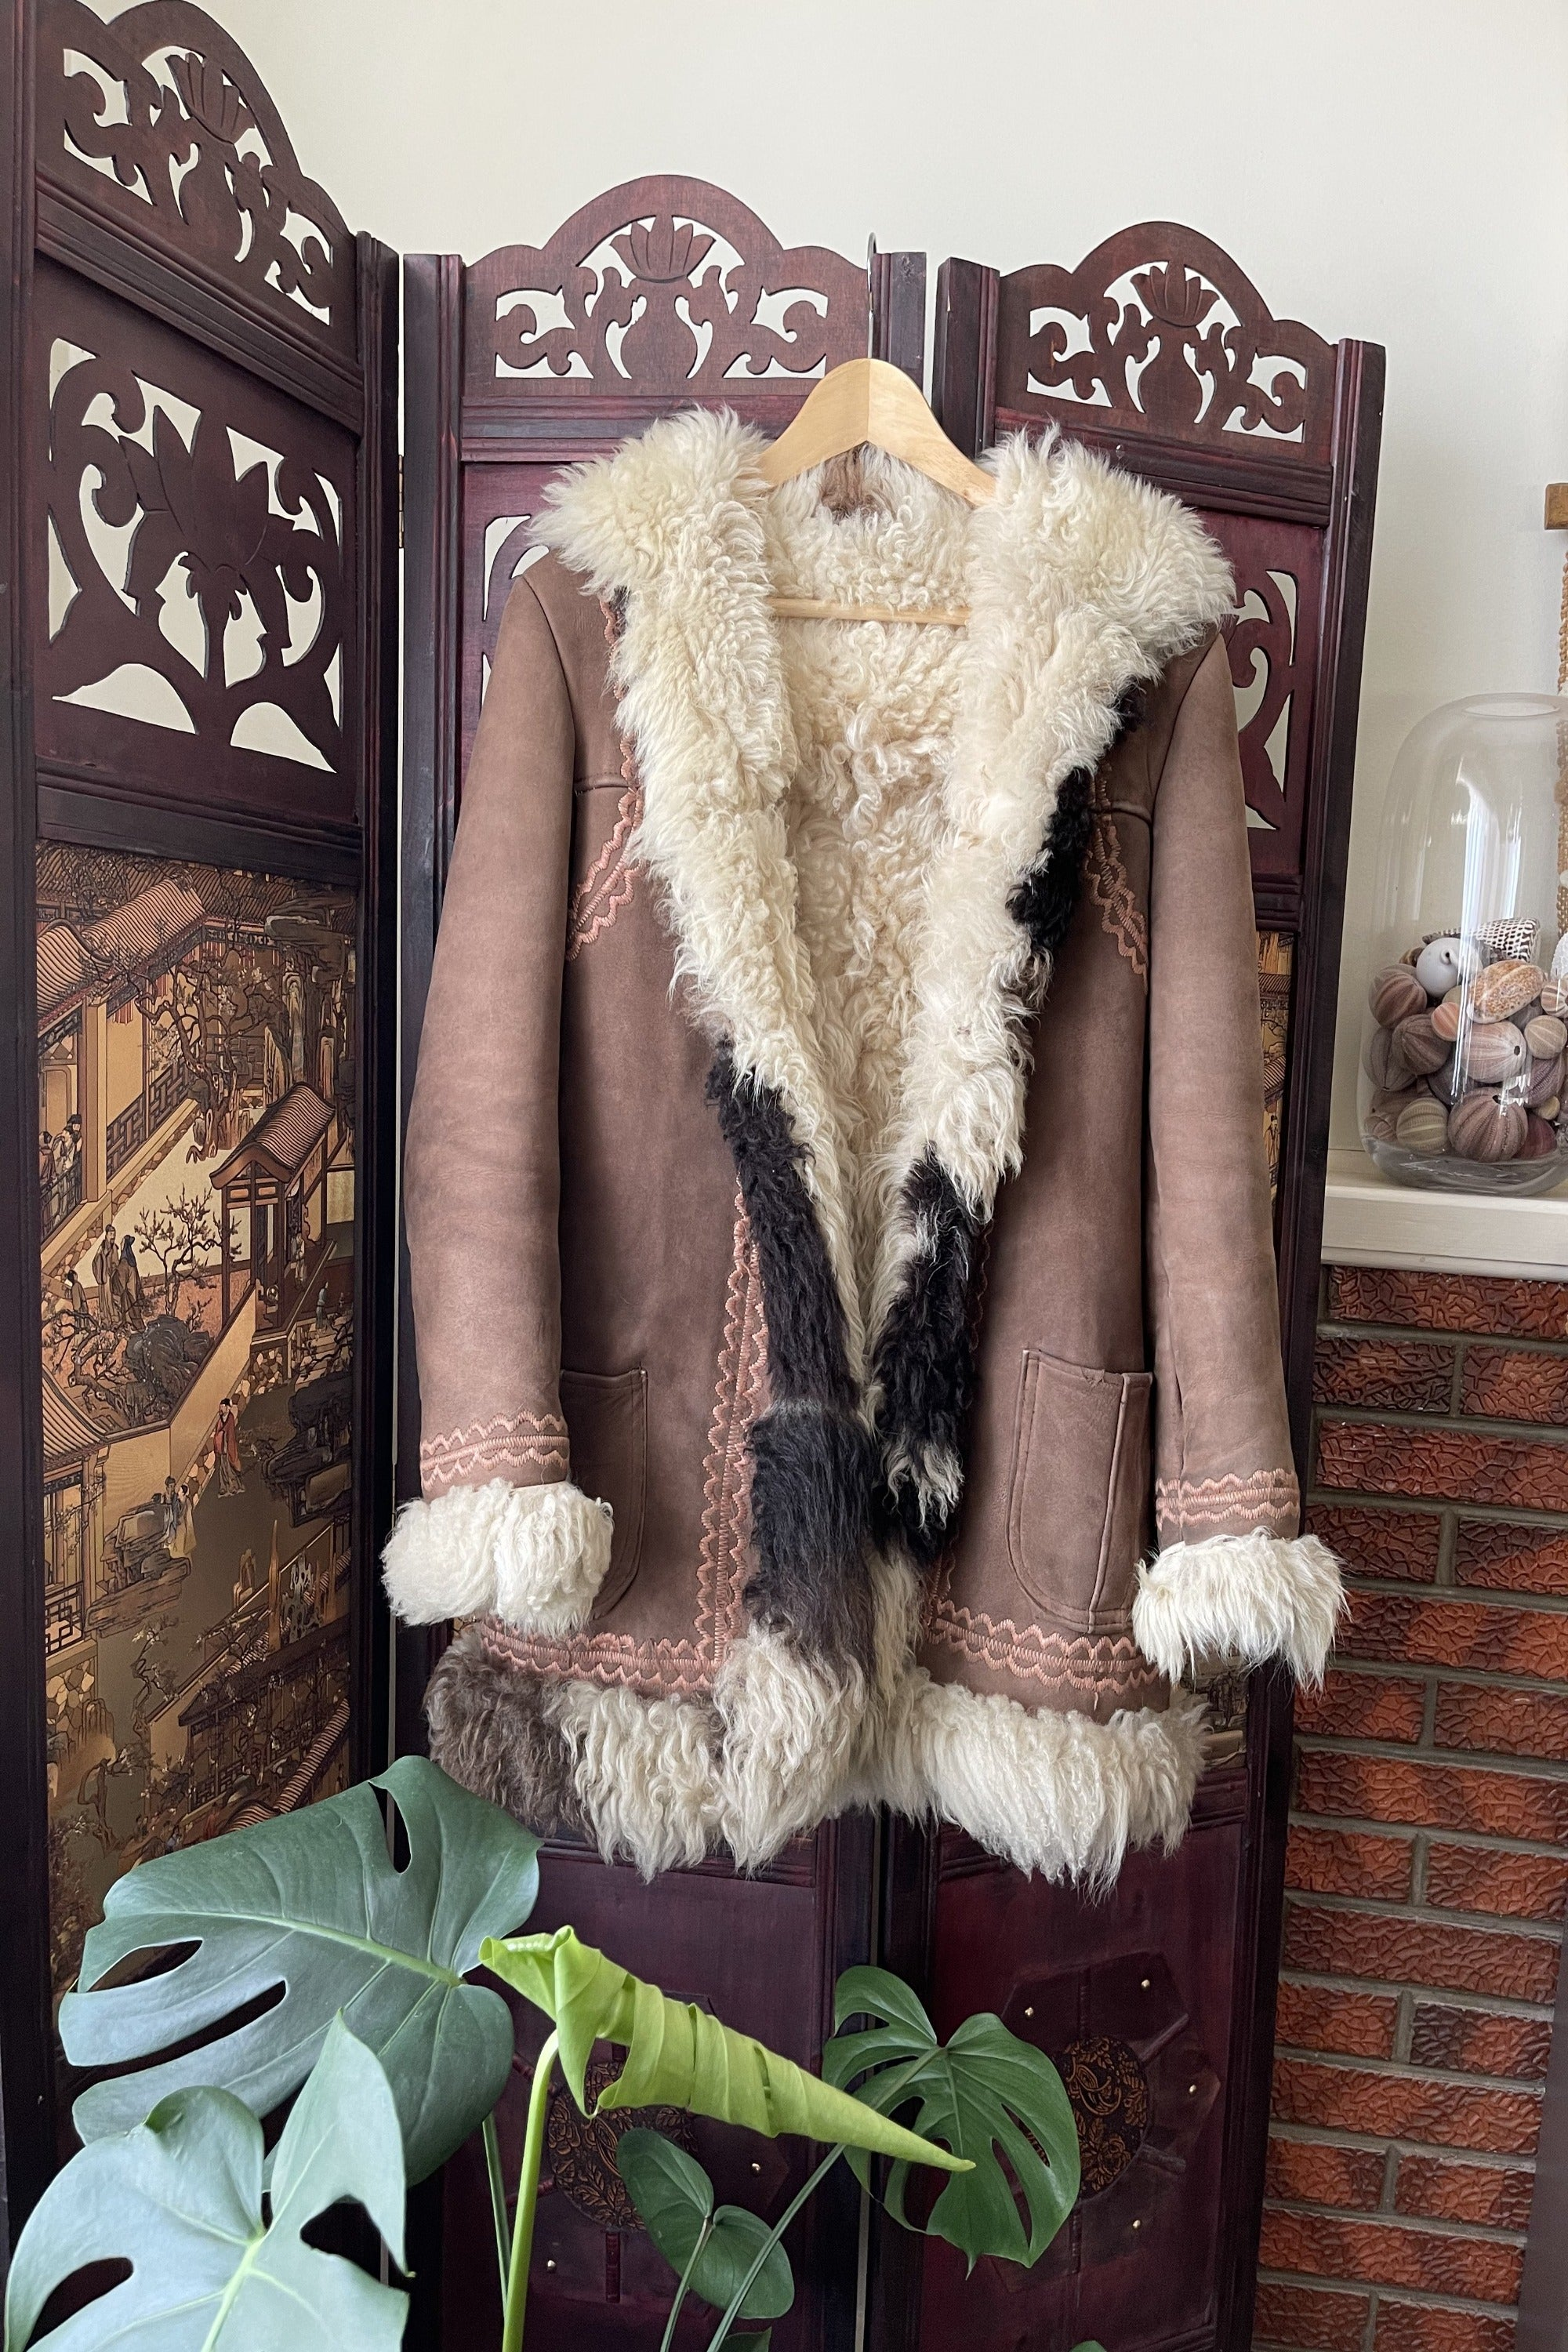 Vintage 1960s Embroidered Shearling Afghan Coat